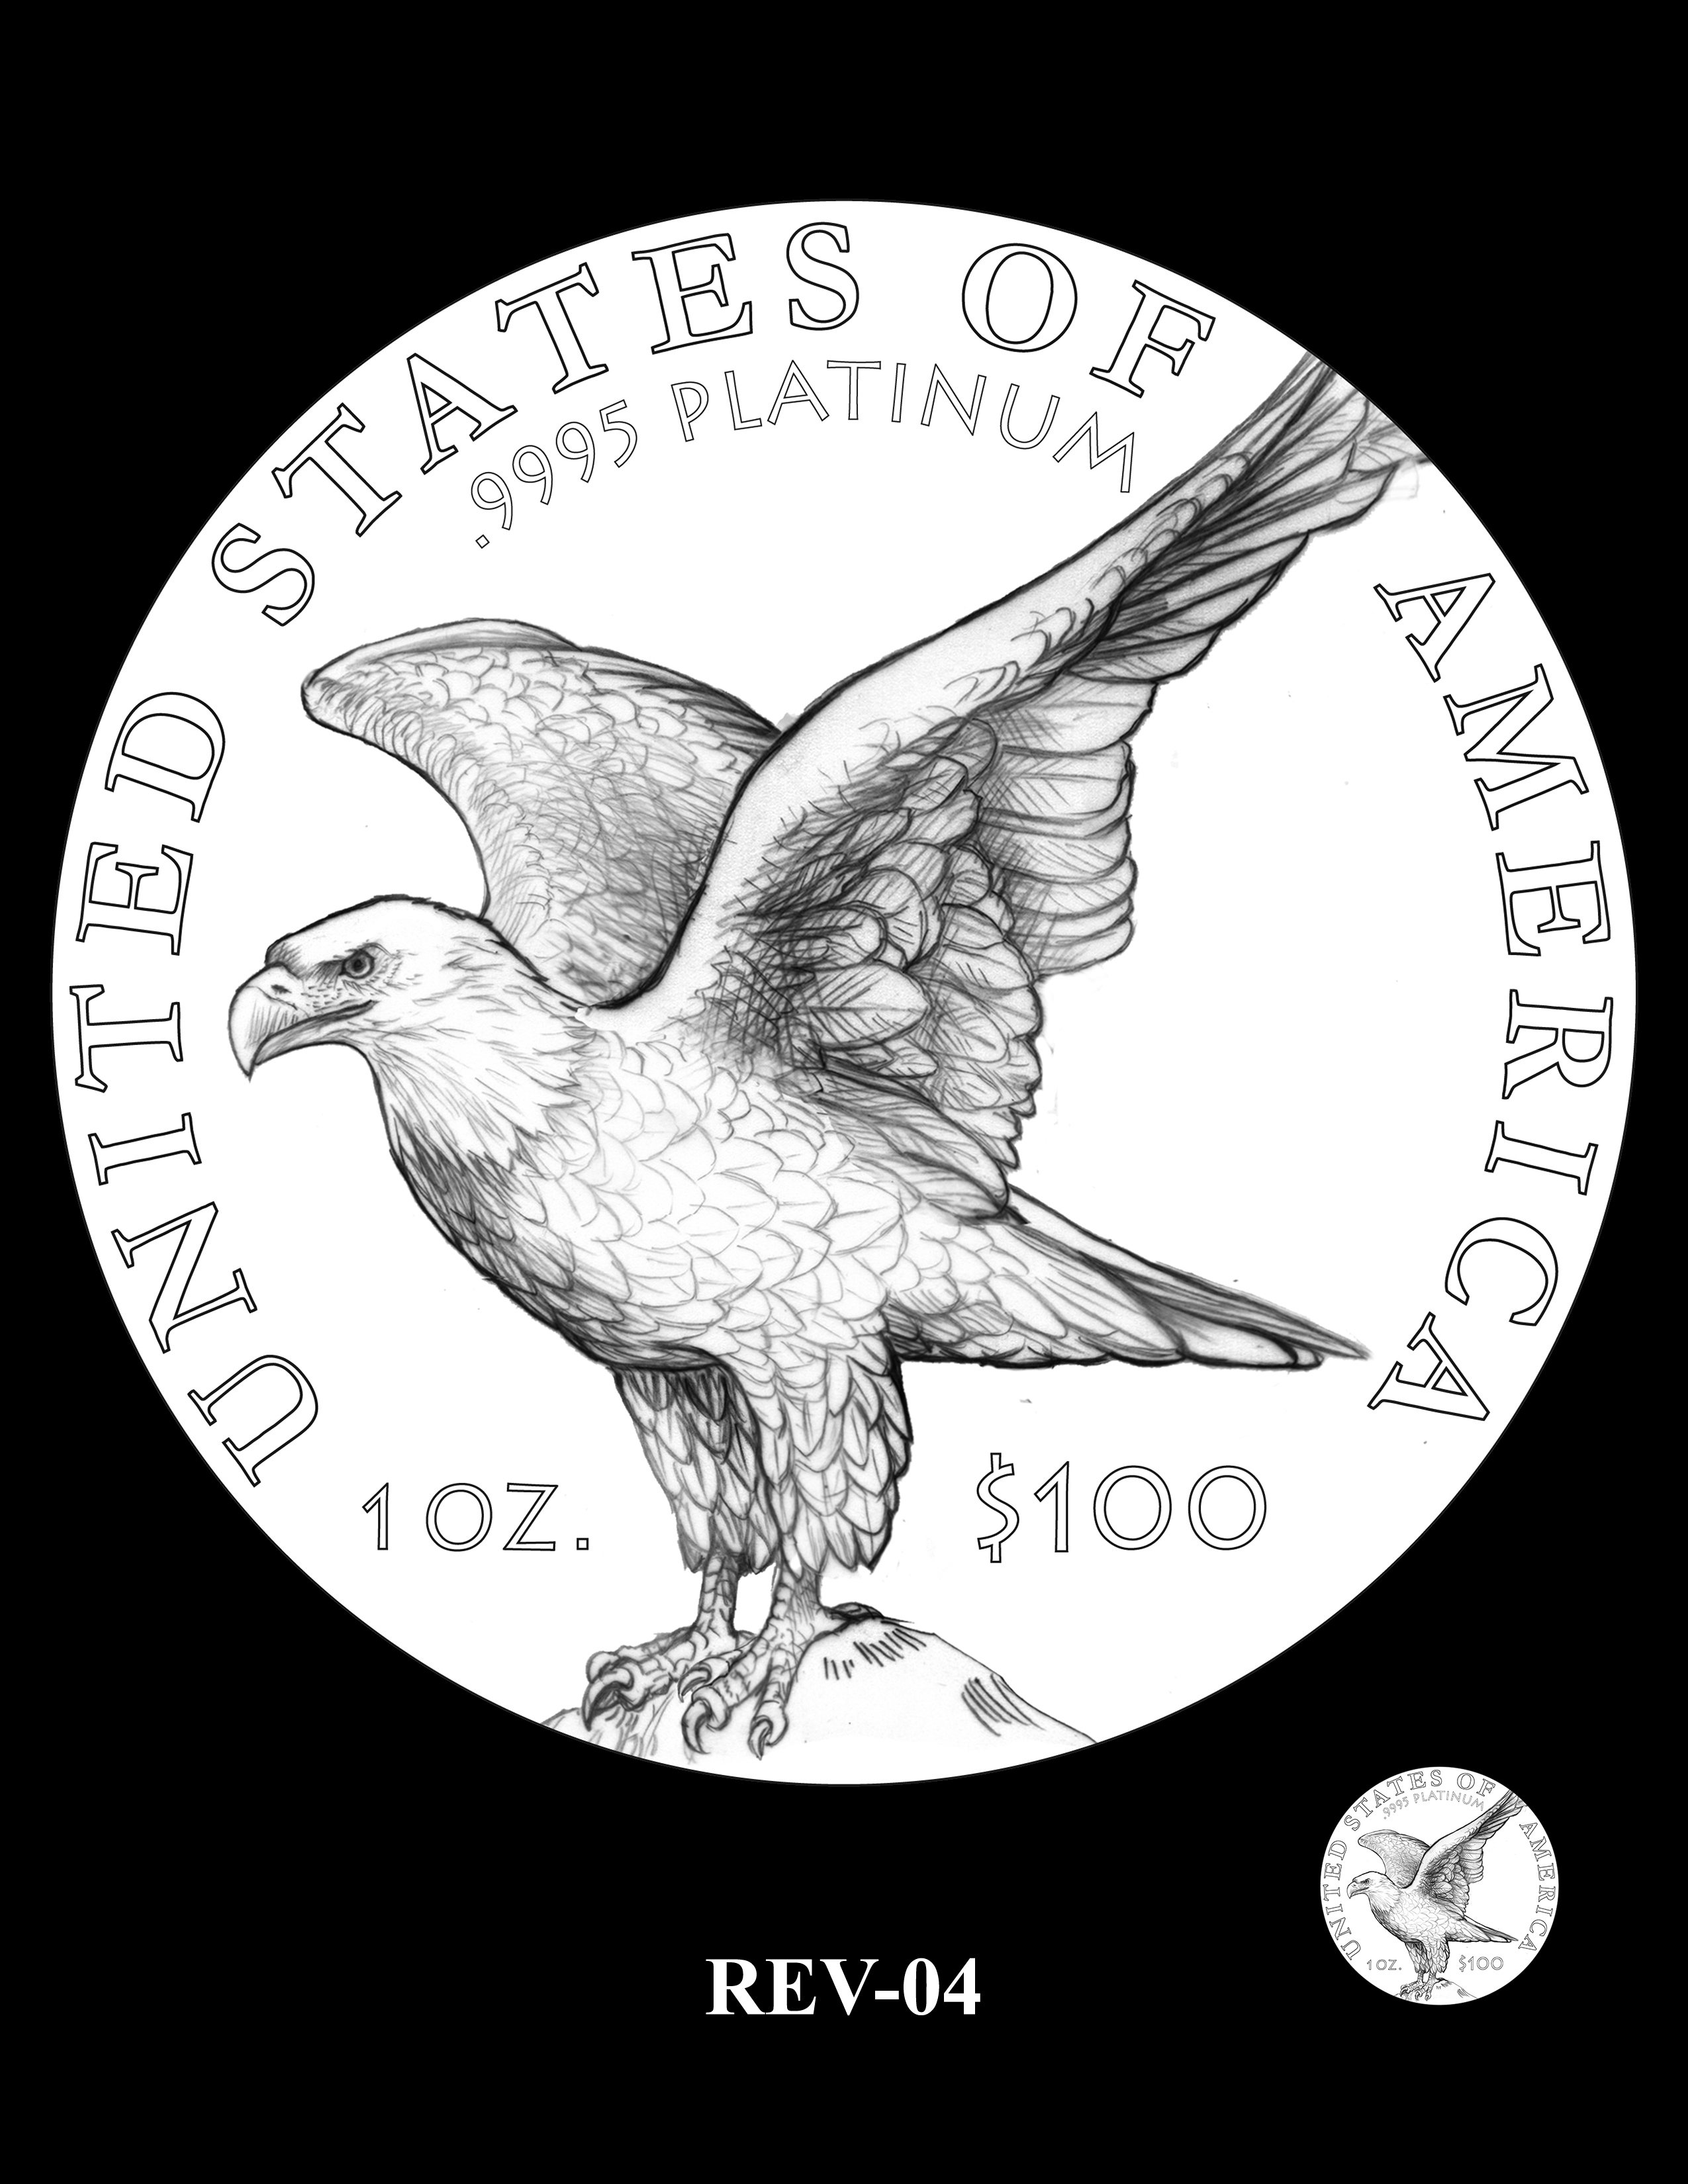 SET04-REV-04 - 2018 2019 and 2020 American Eagle Platinum Proof Program